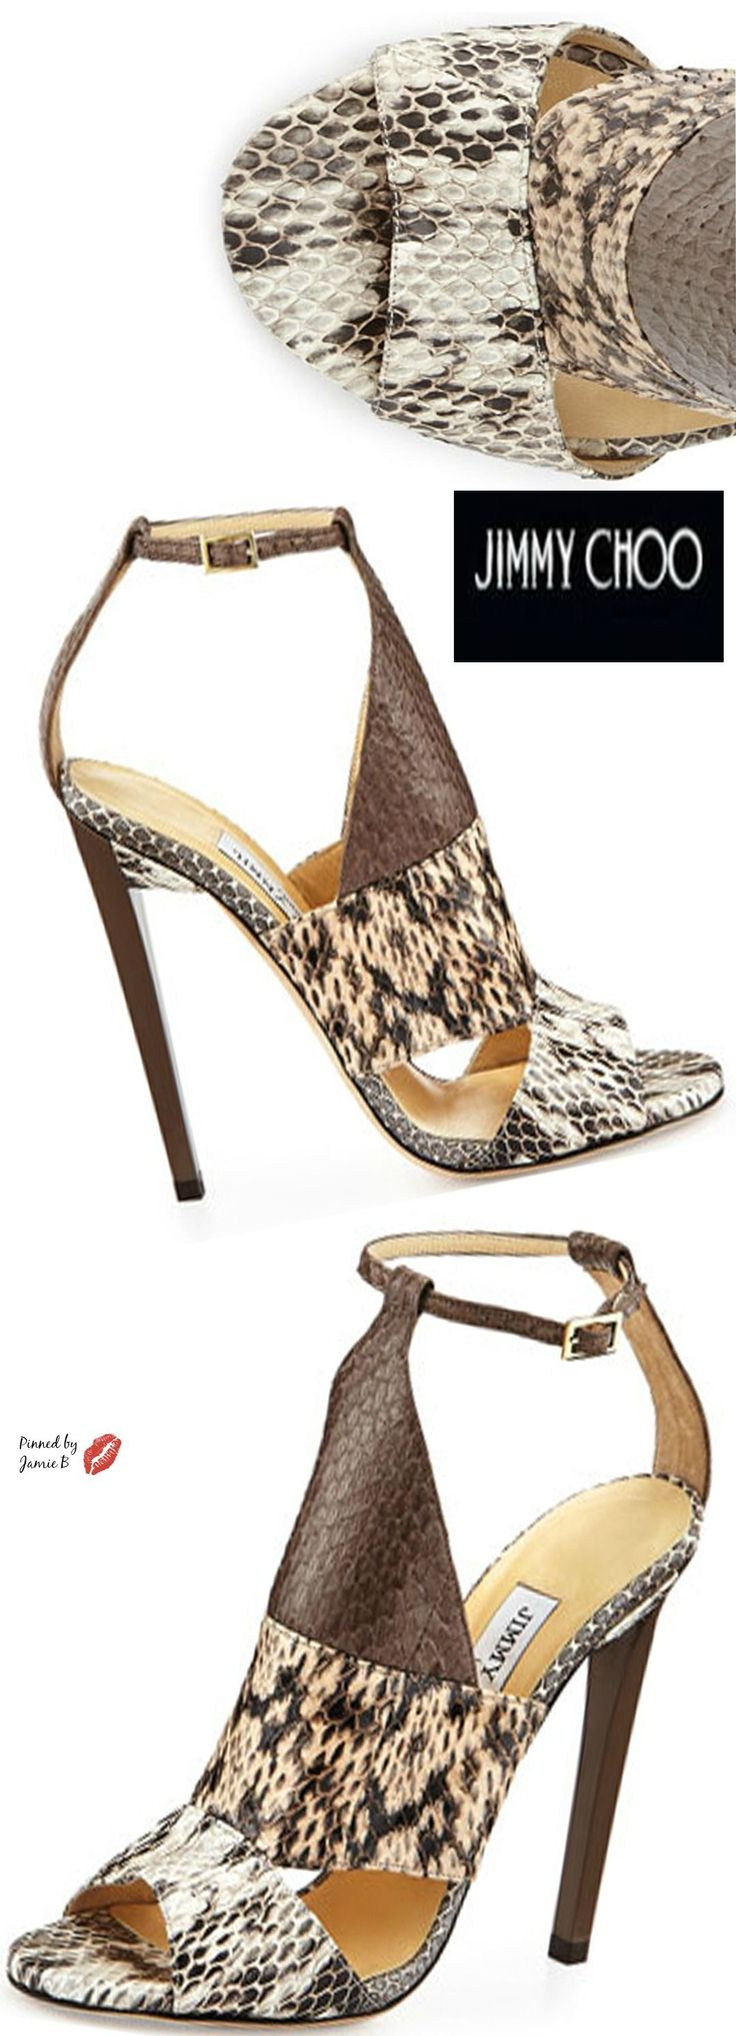 Jimmy Choo | Timbus Colorblock Snakeskin Sandal | Dorothy Johnson